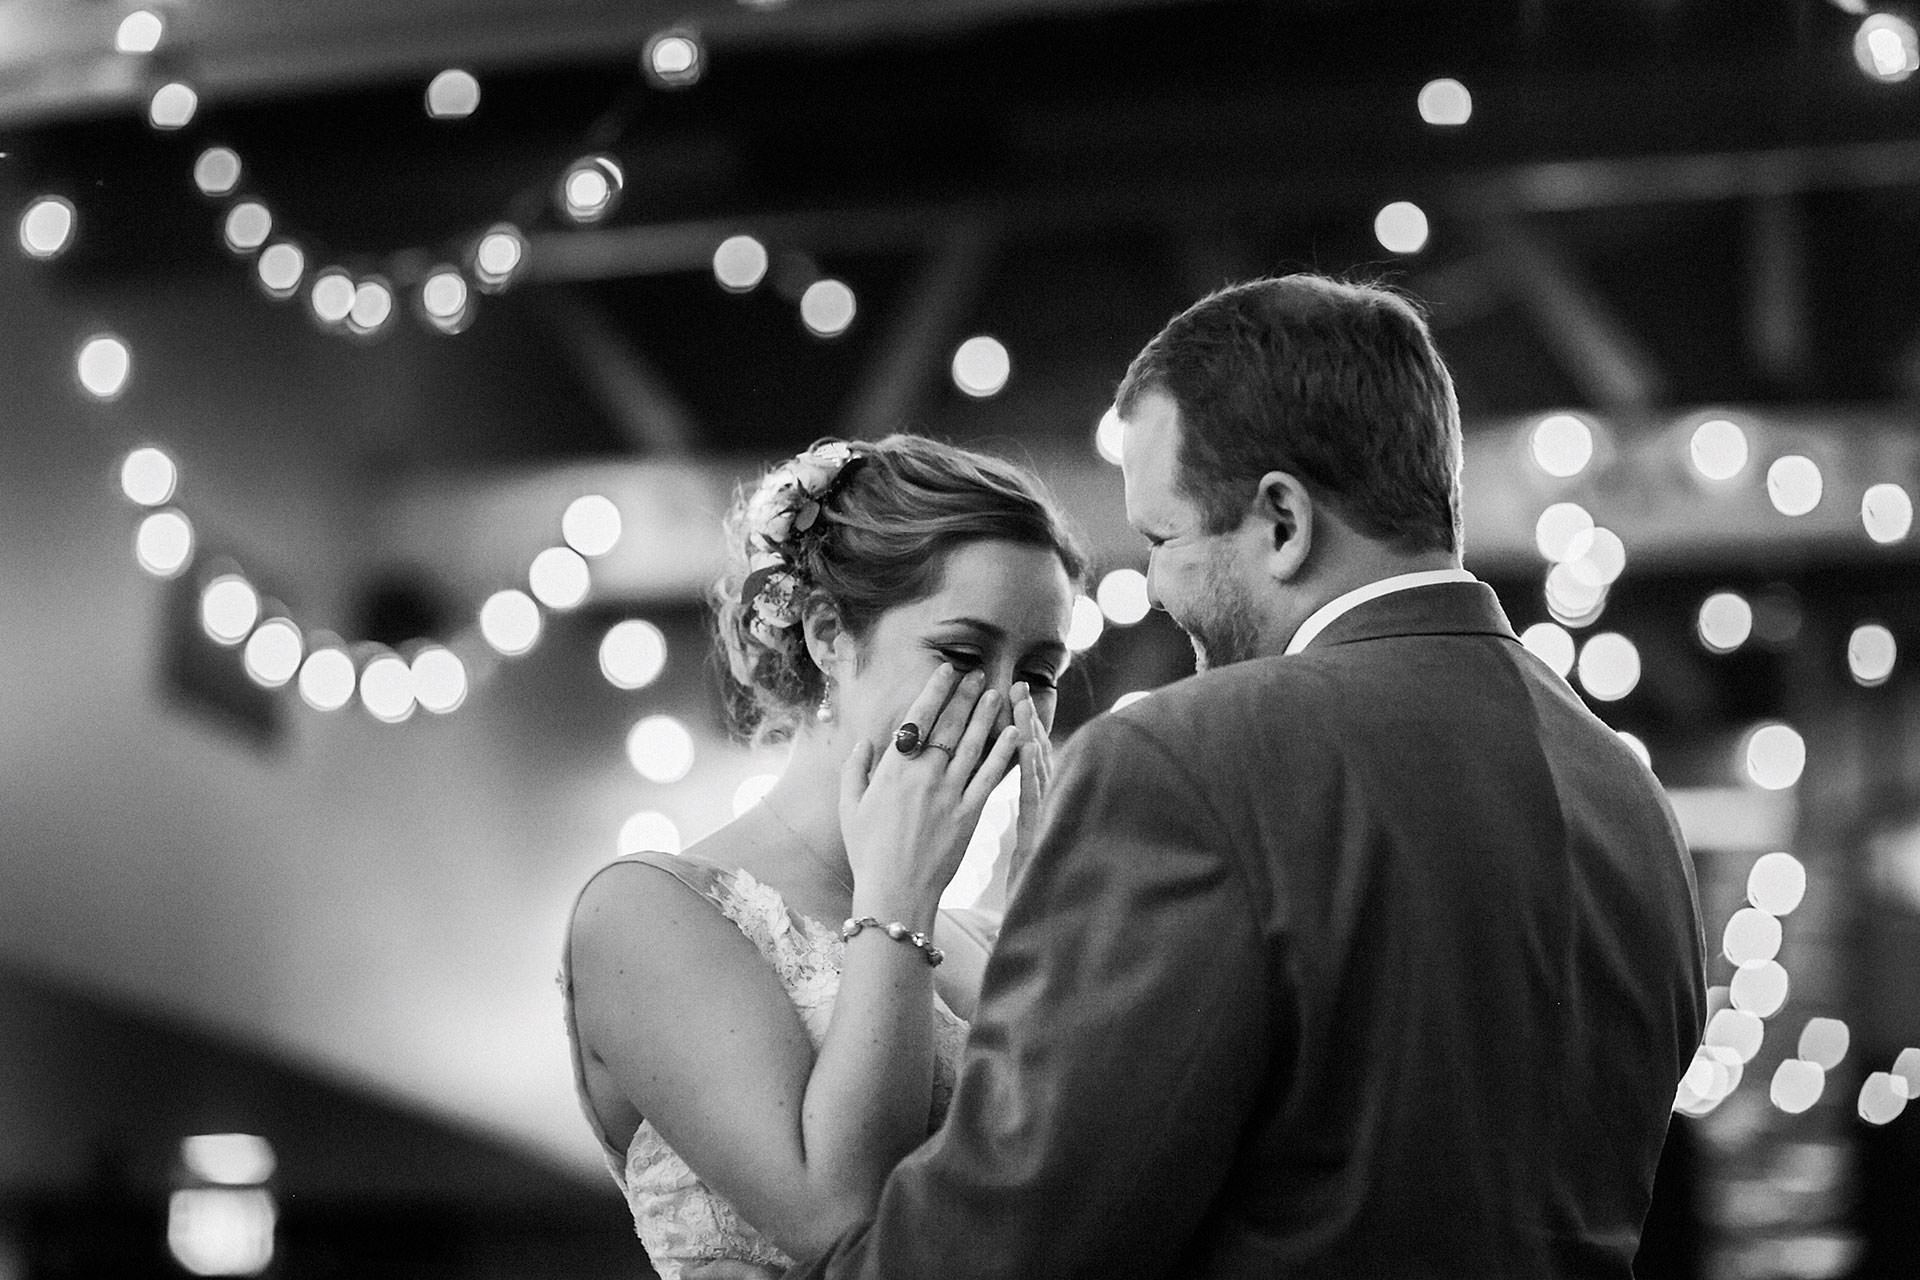 An emotional wedding moment between a couple during their first dance in calistoga california by heather elizabeth photography